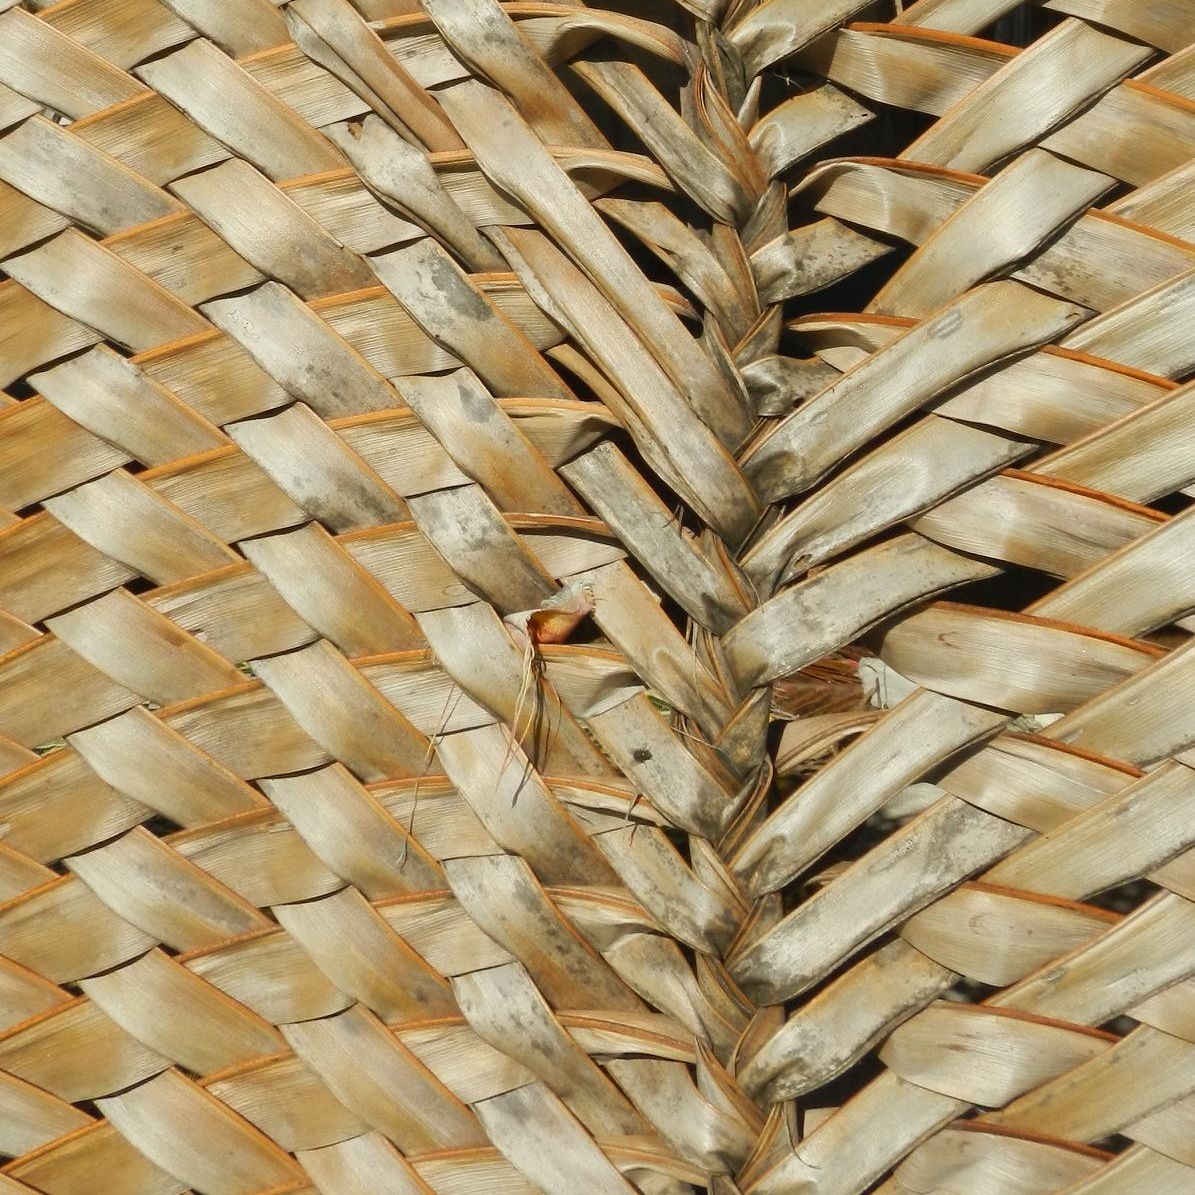 Weaving, Noumea by The Doubtful Traveller